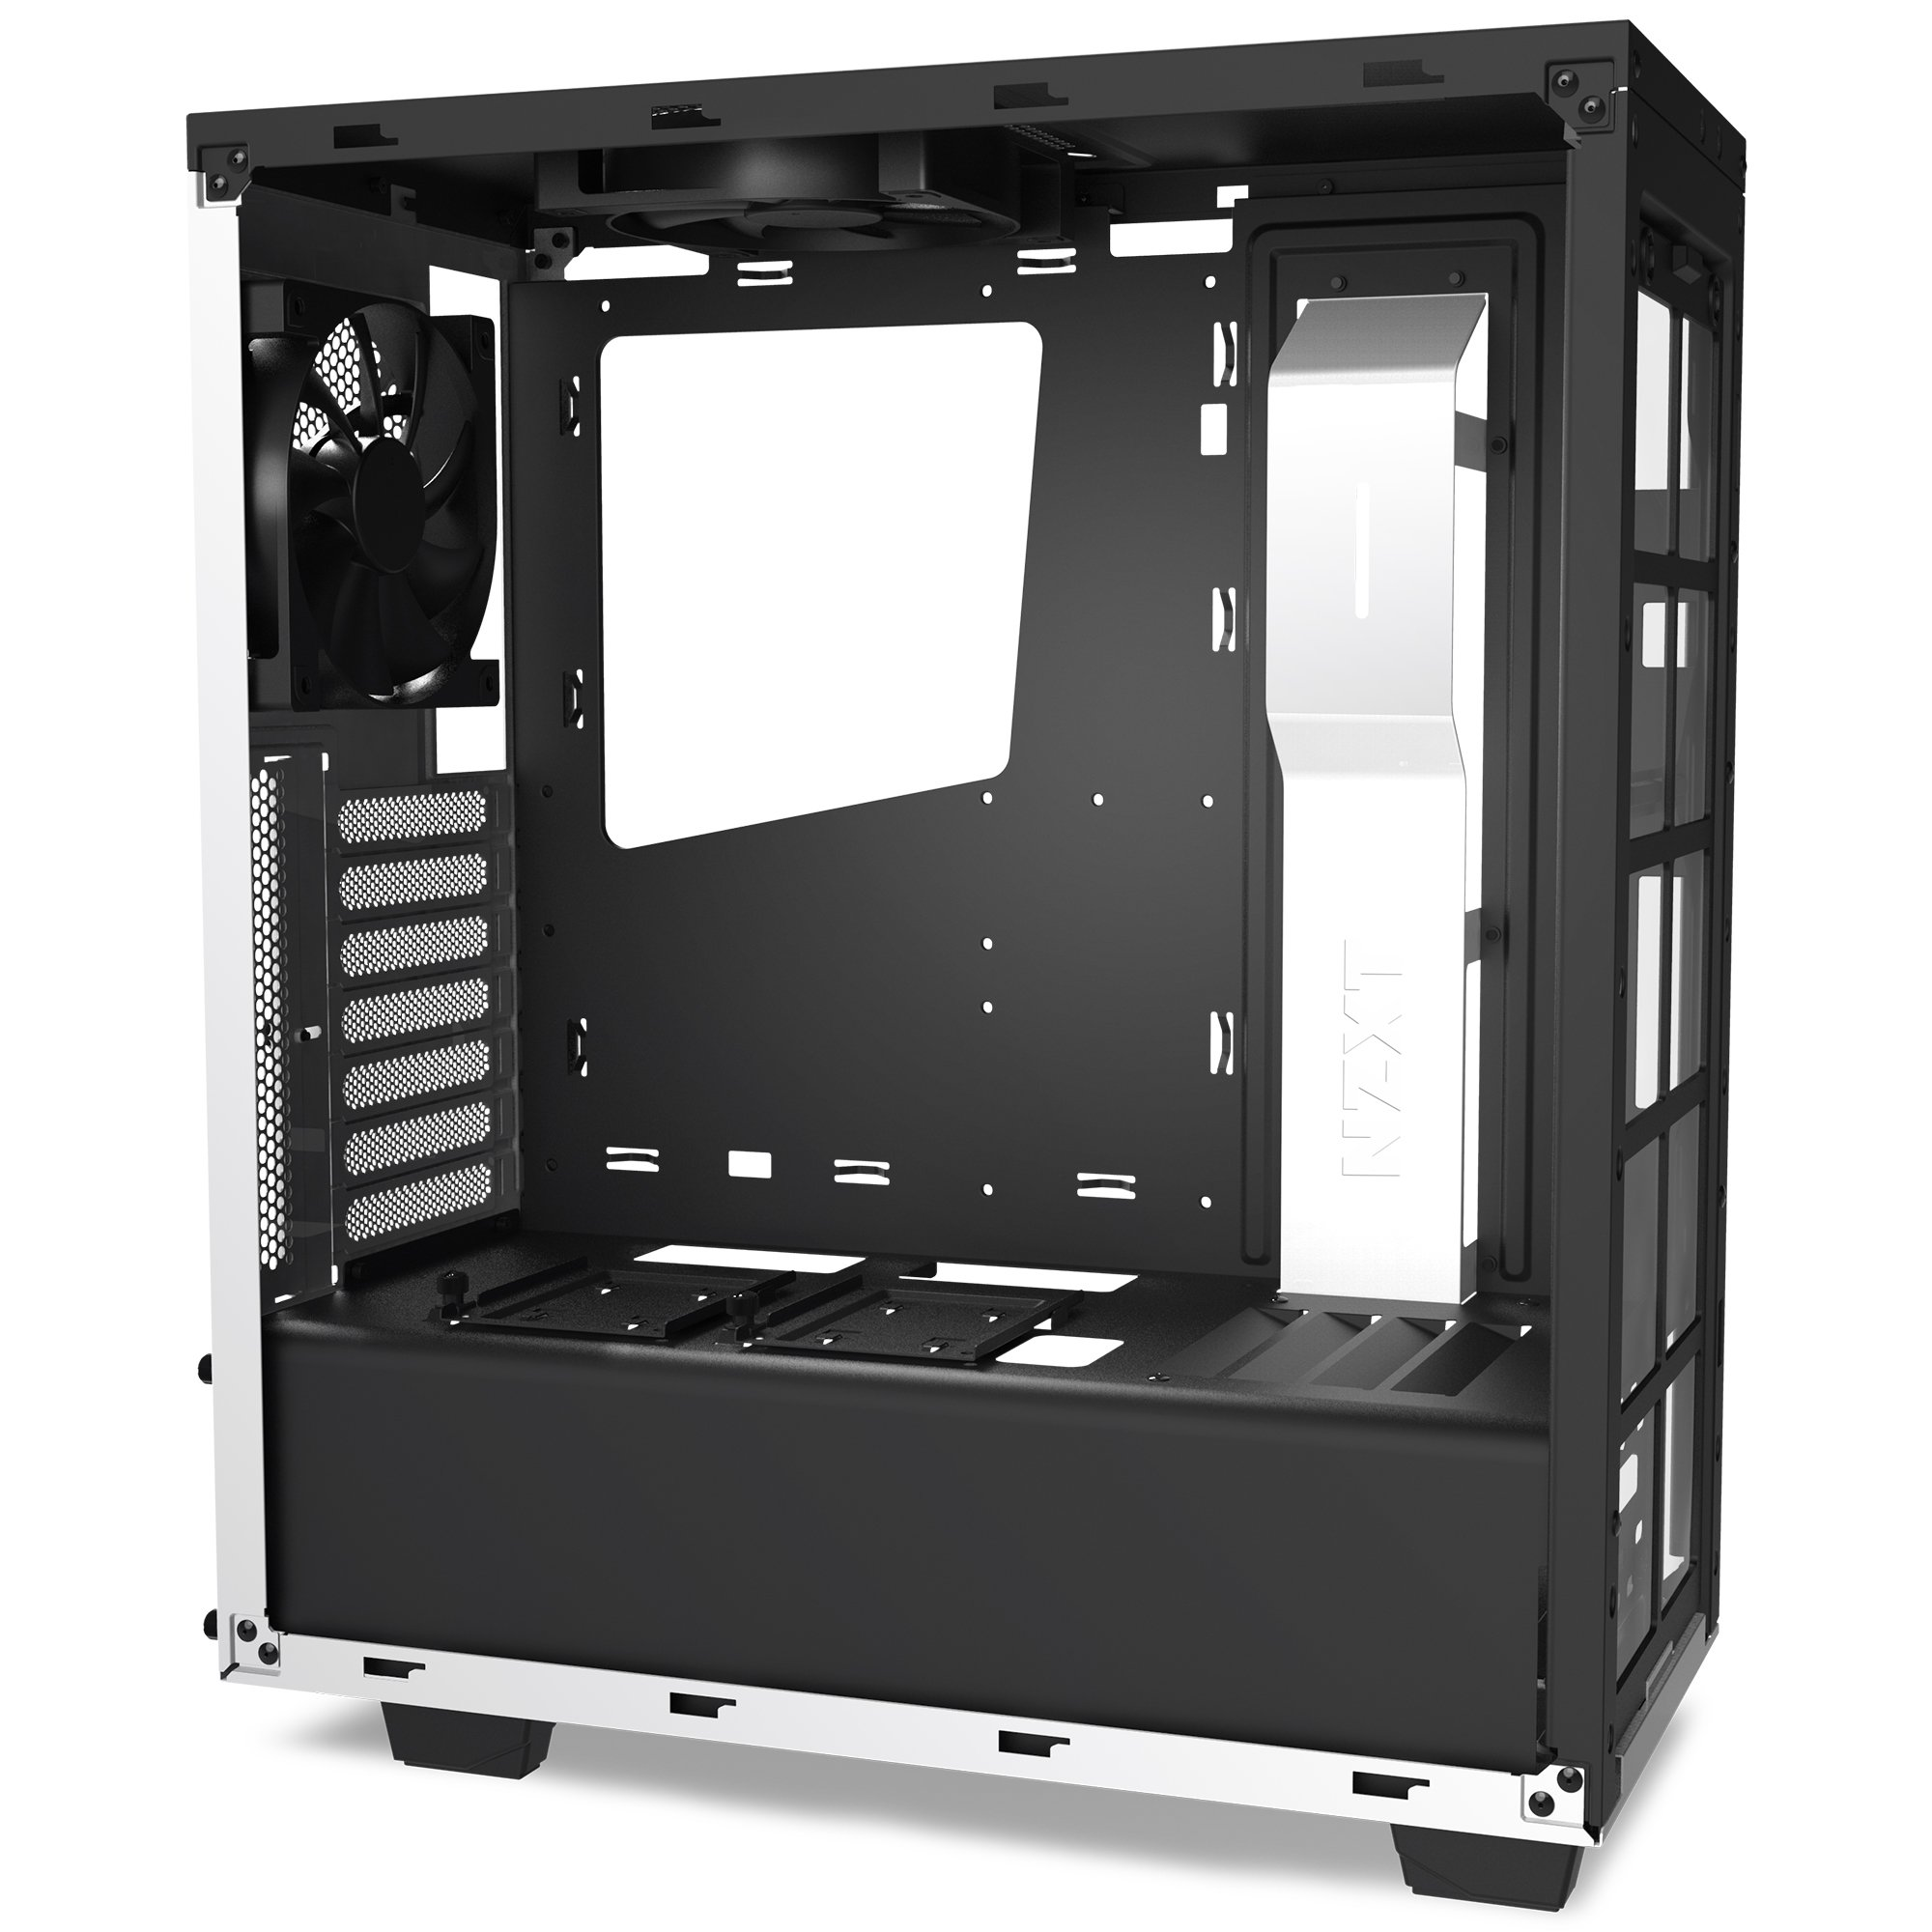 NZXT S340 Mid Tower Computer Case, White (CA-S340W-W1) by Nzxt (Image #7)